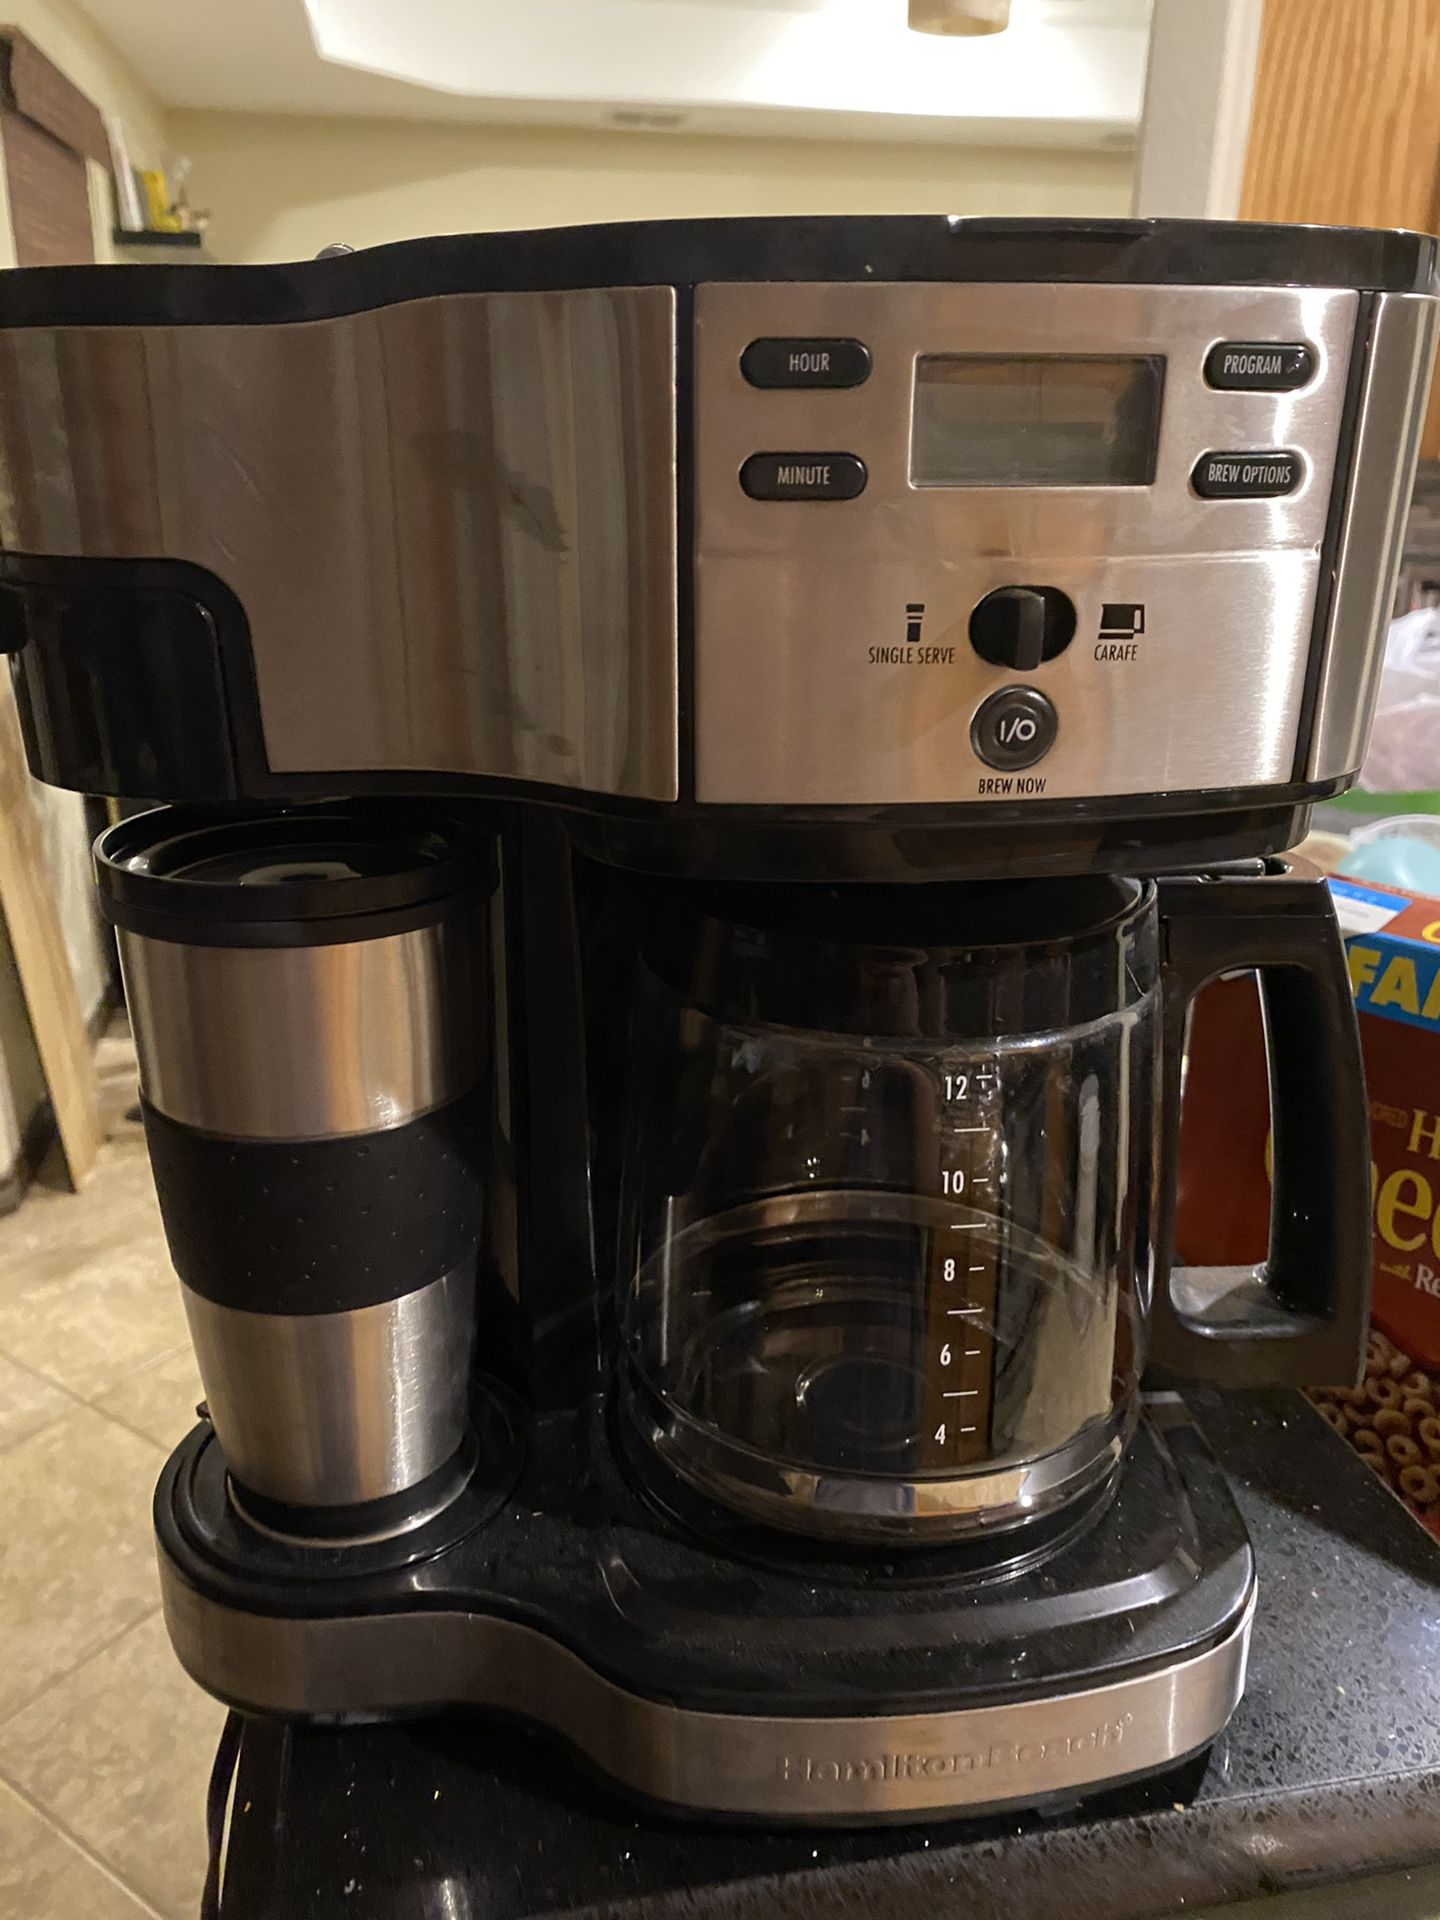 New coffee pot never used